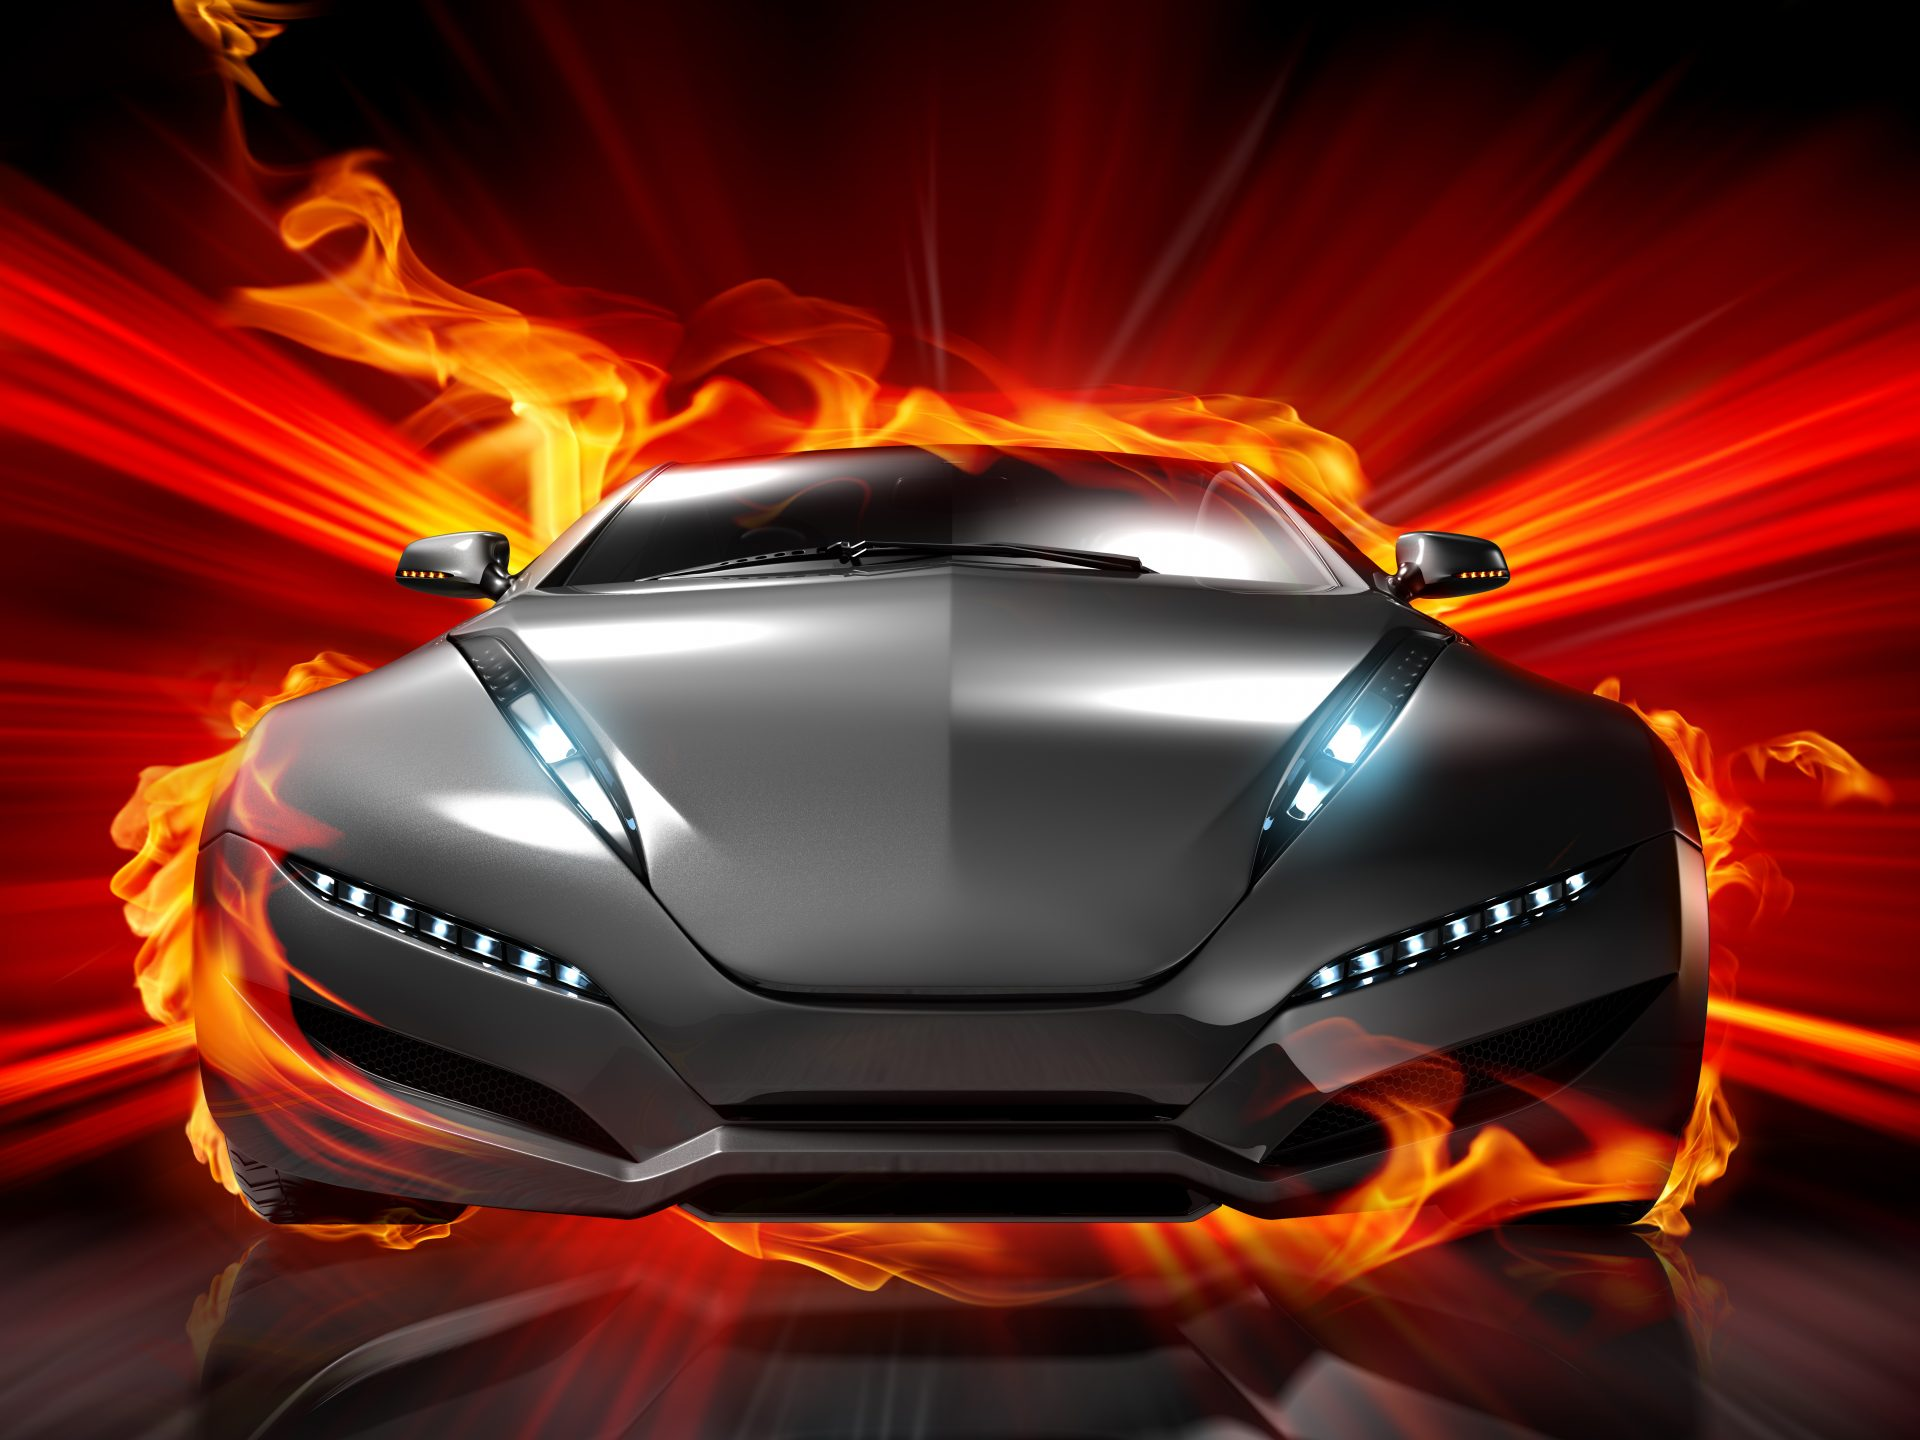 Car On Fire - Download hd wallpapers